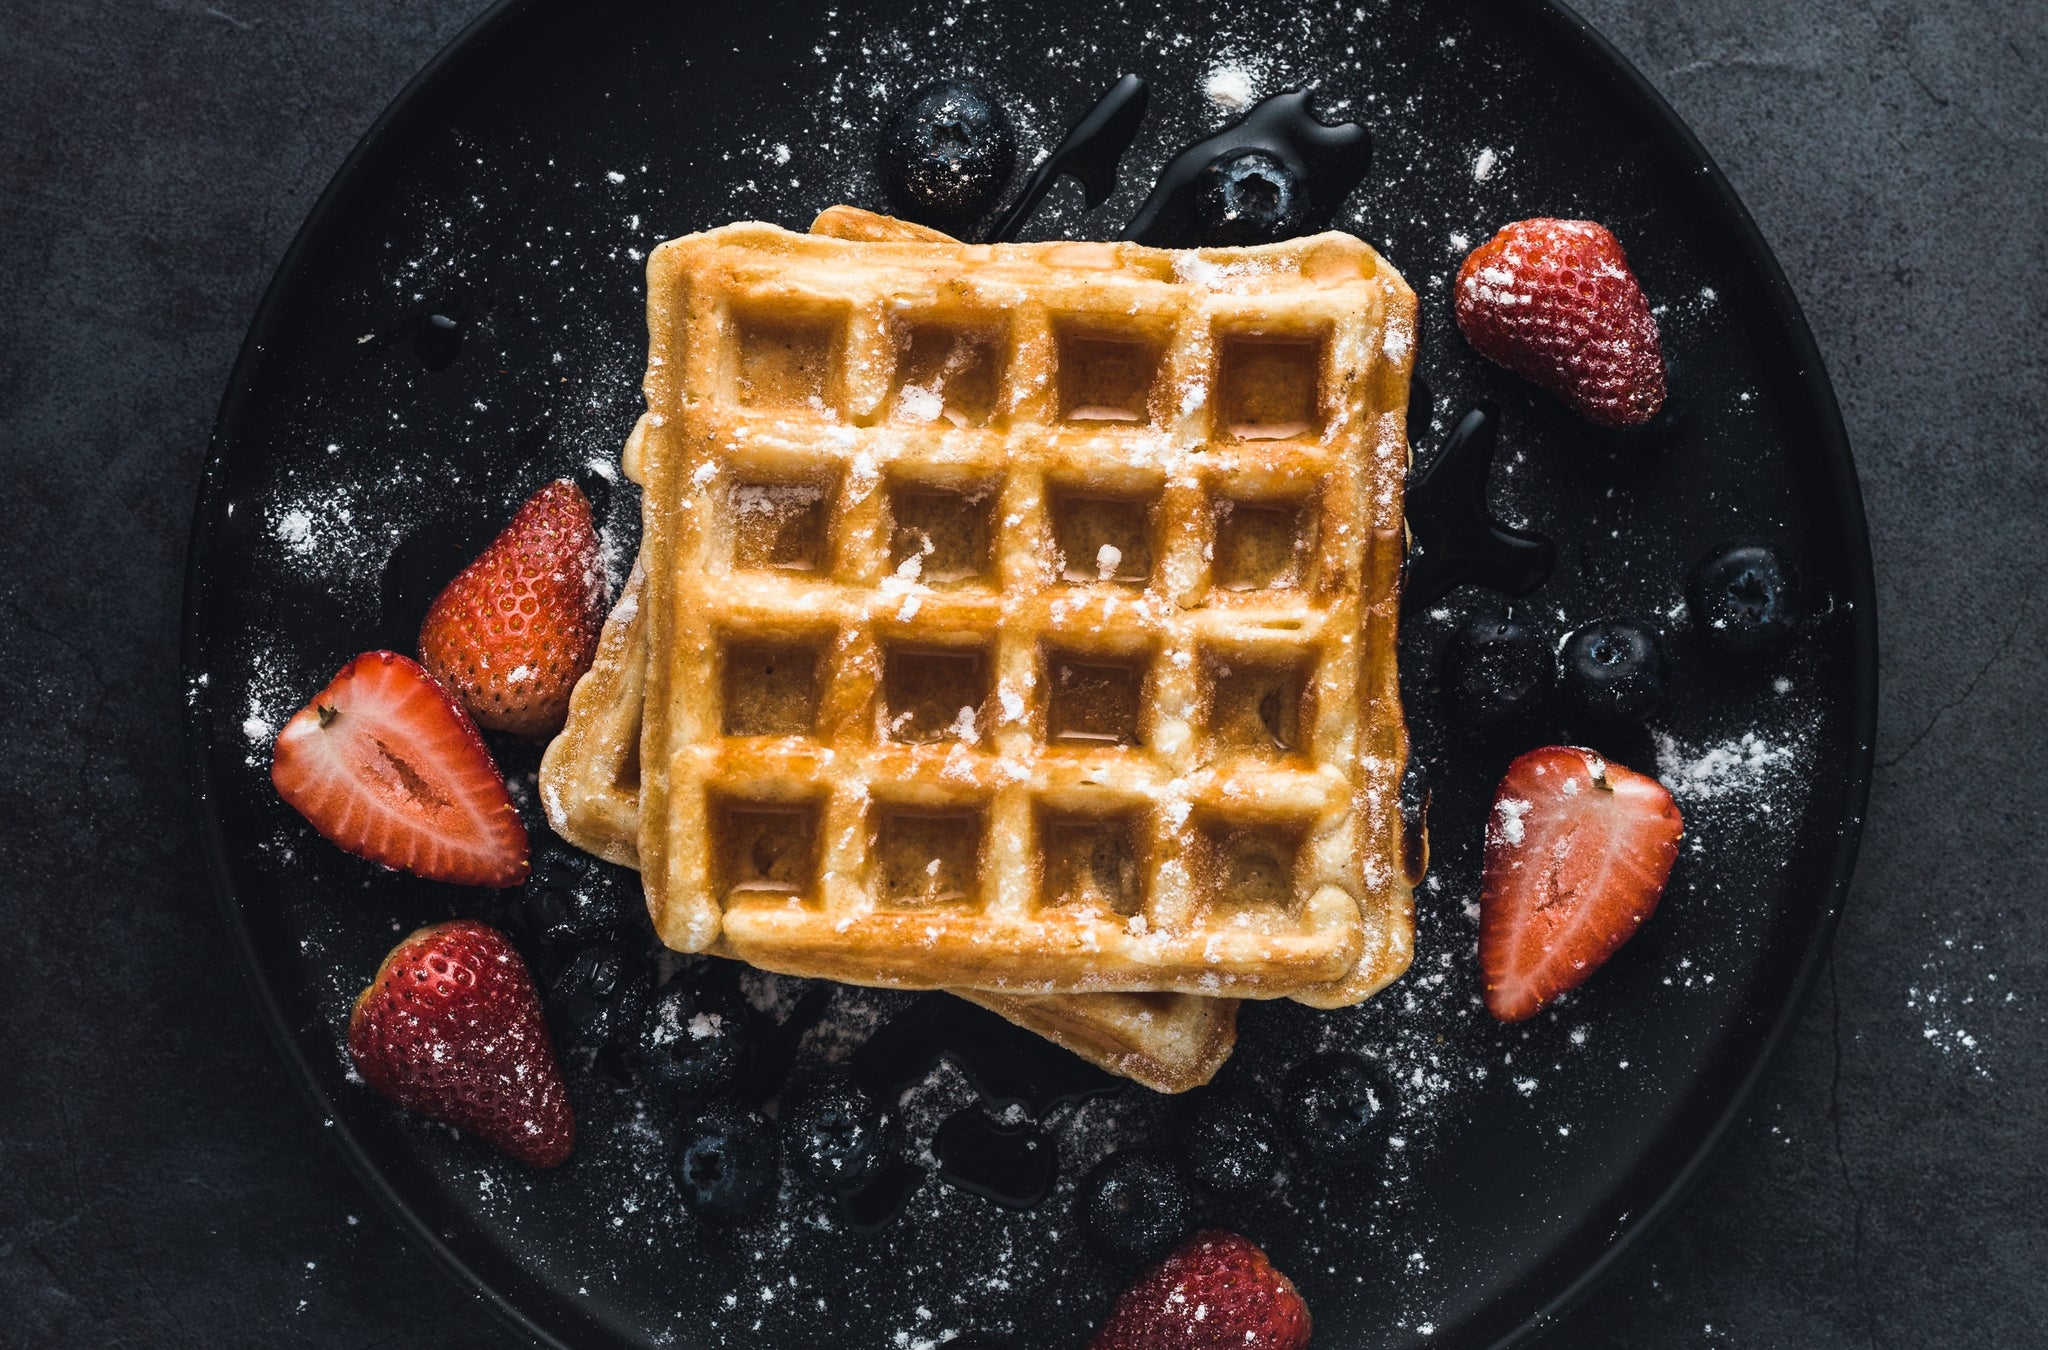 Two square waffles stacked on top of each other on a black plate shown from above, sprinkled with powdered sugar and several strawberries slices in half also laying on the plate.